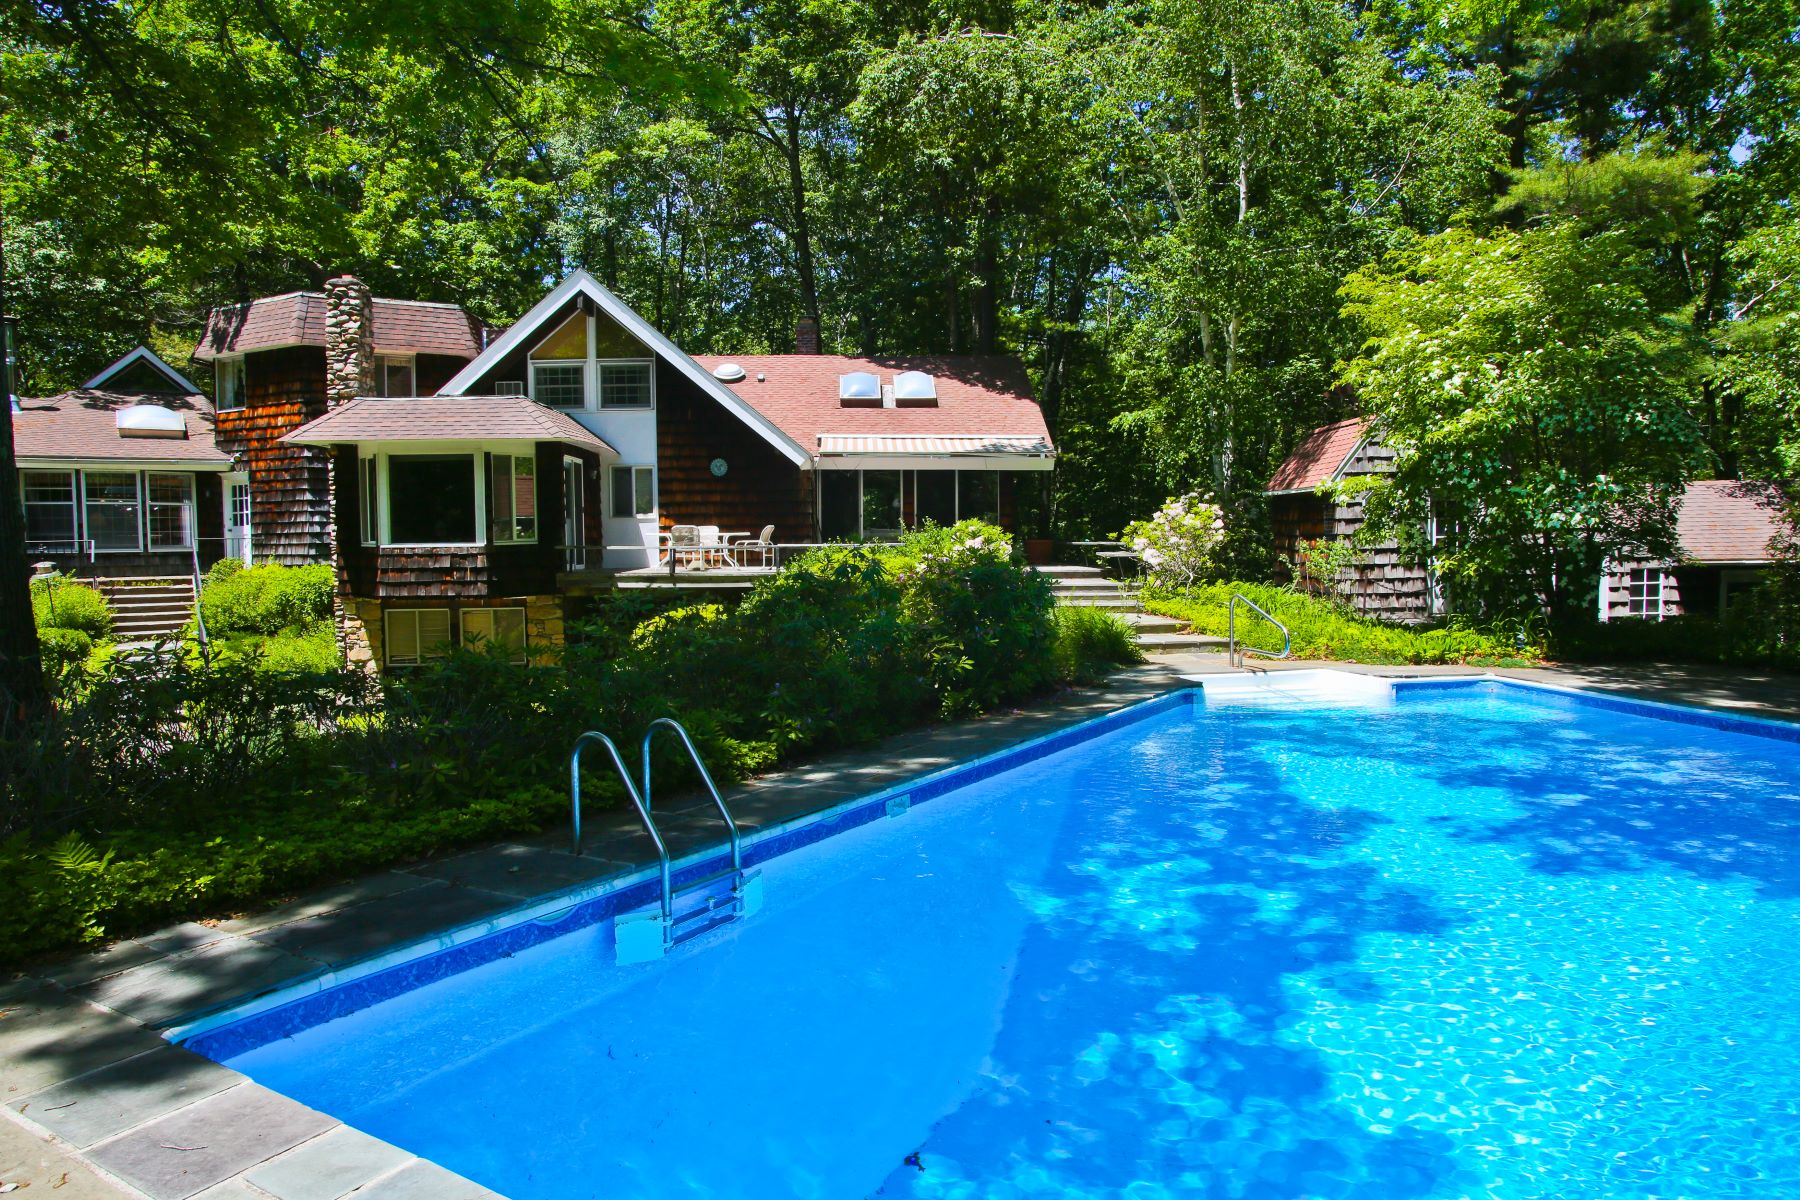 Maison unifamiliale pour l Vente à Secluded, Comfortable 63-Acre Estate in Great Barrington 14 Monument Valley Rd Great Barrington, Massachusetts 01230 États-Unis